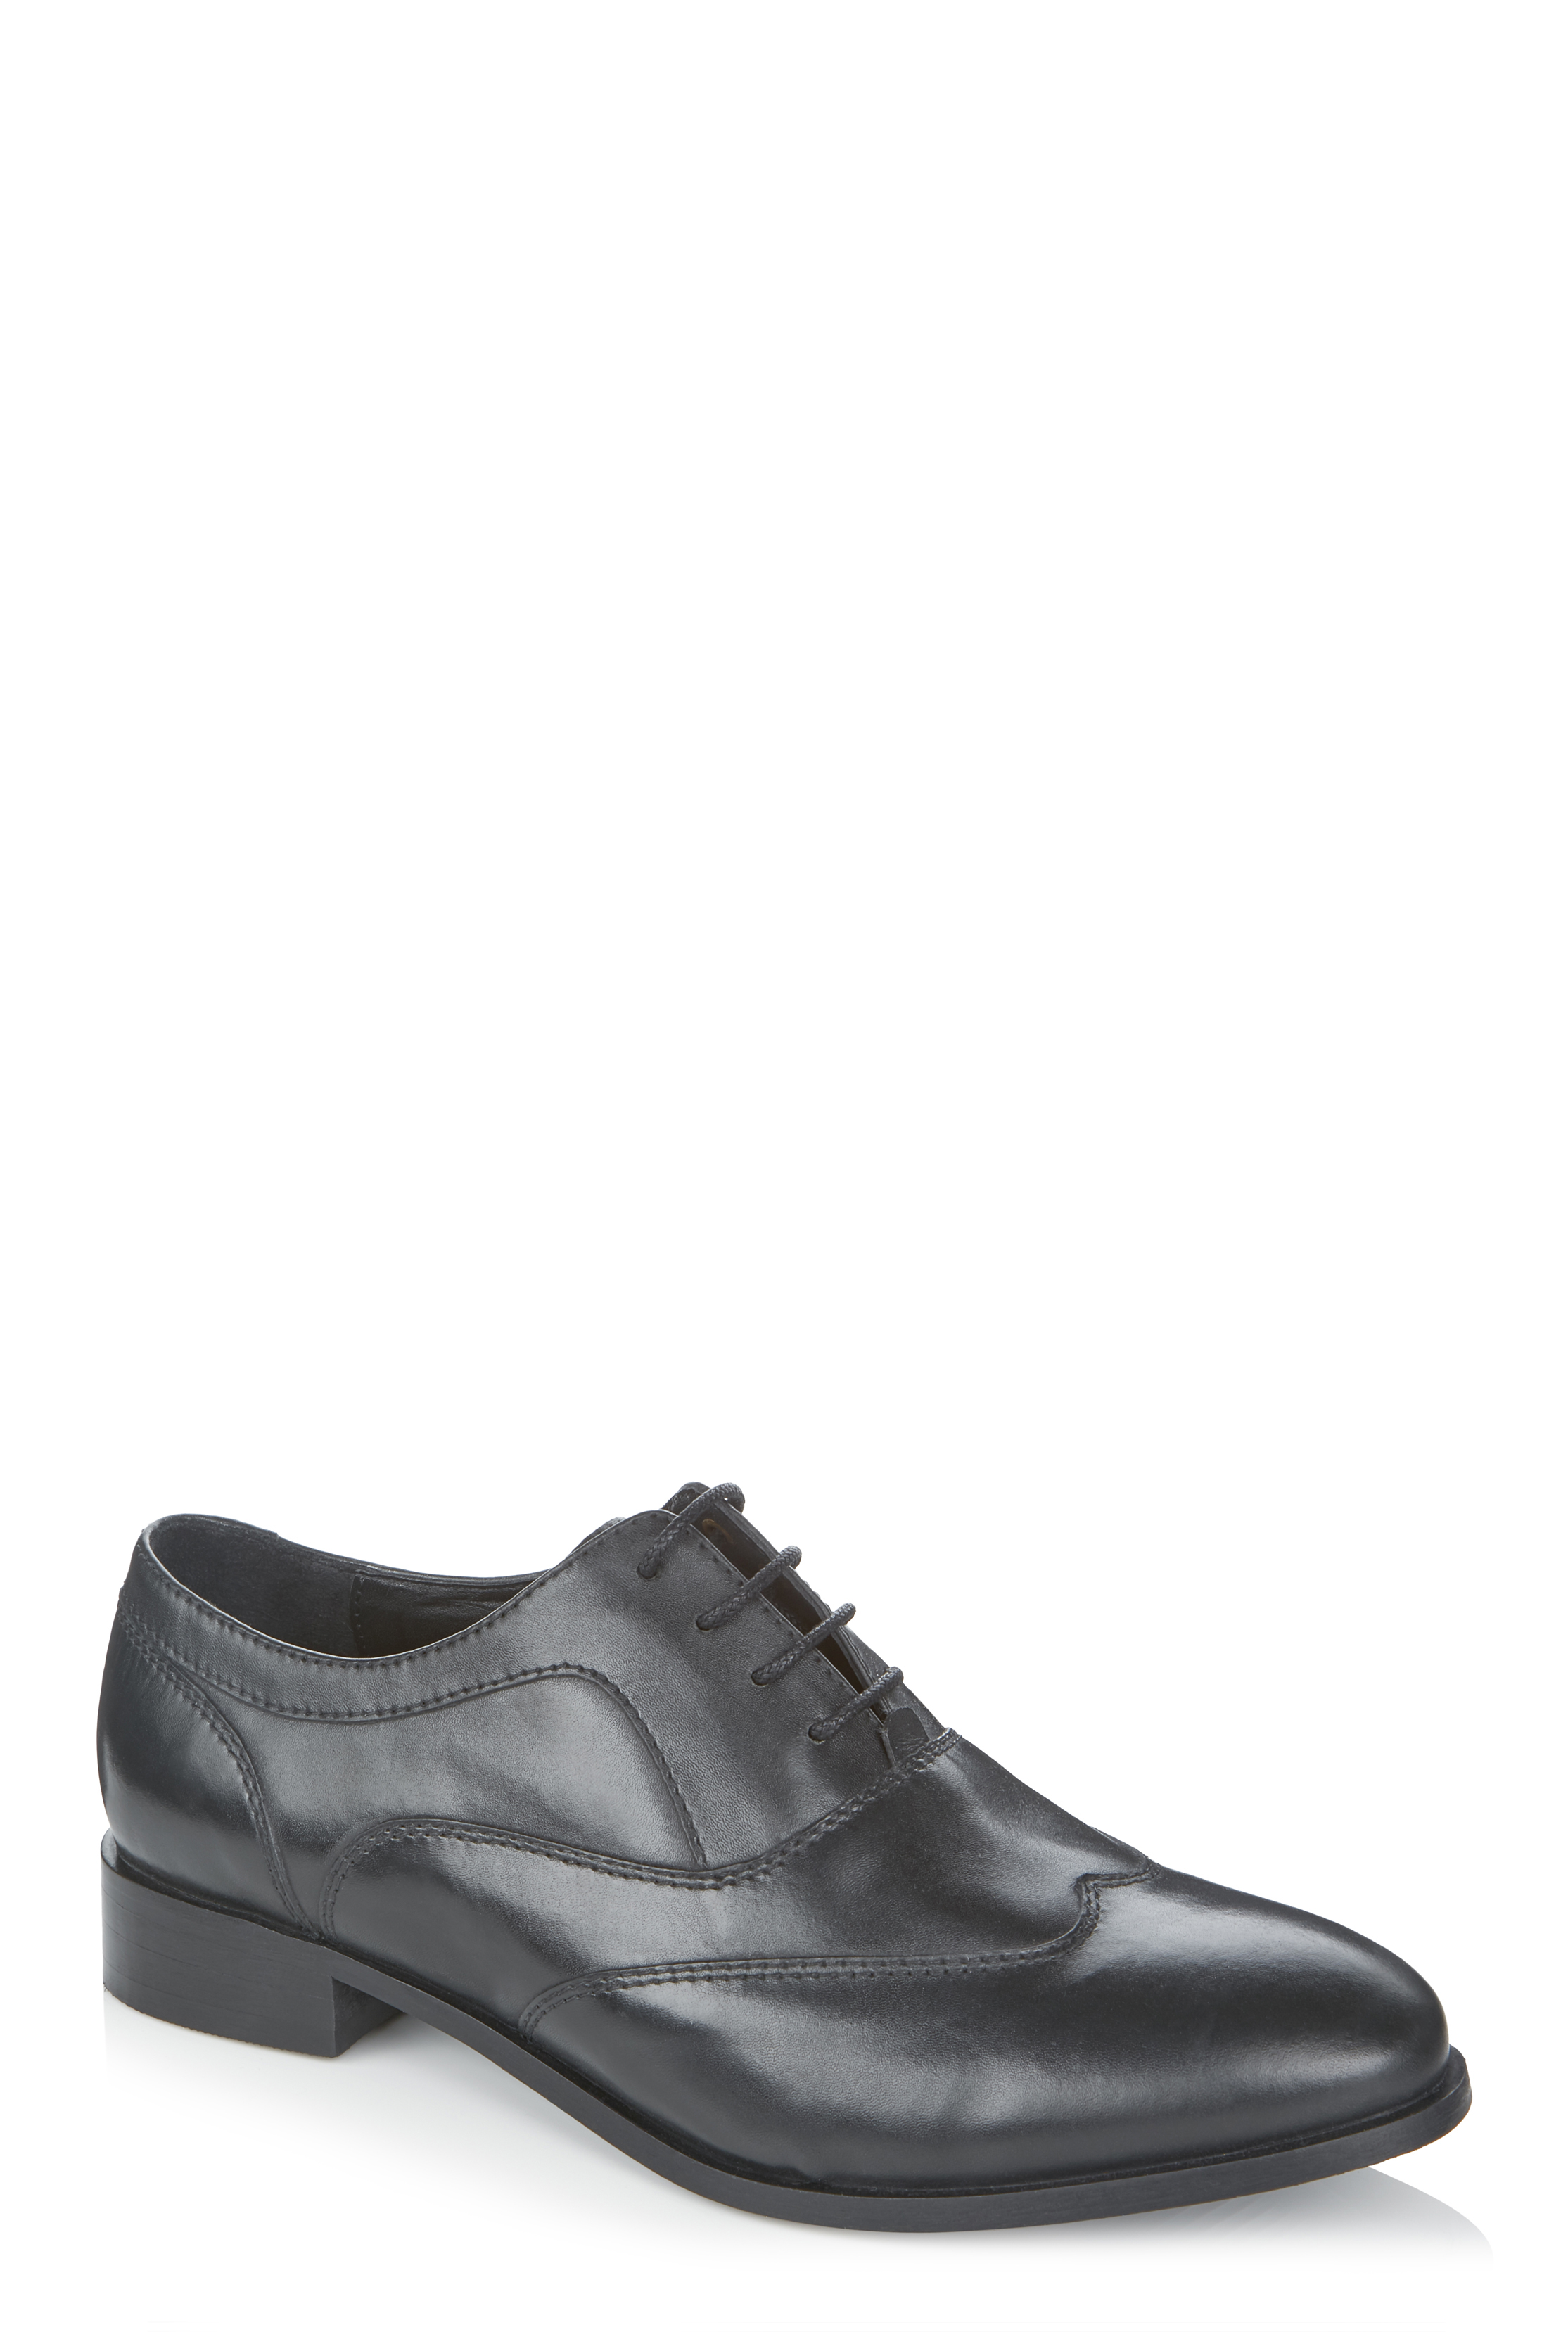 LTS Lane Leather Lace Up